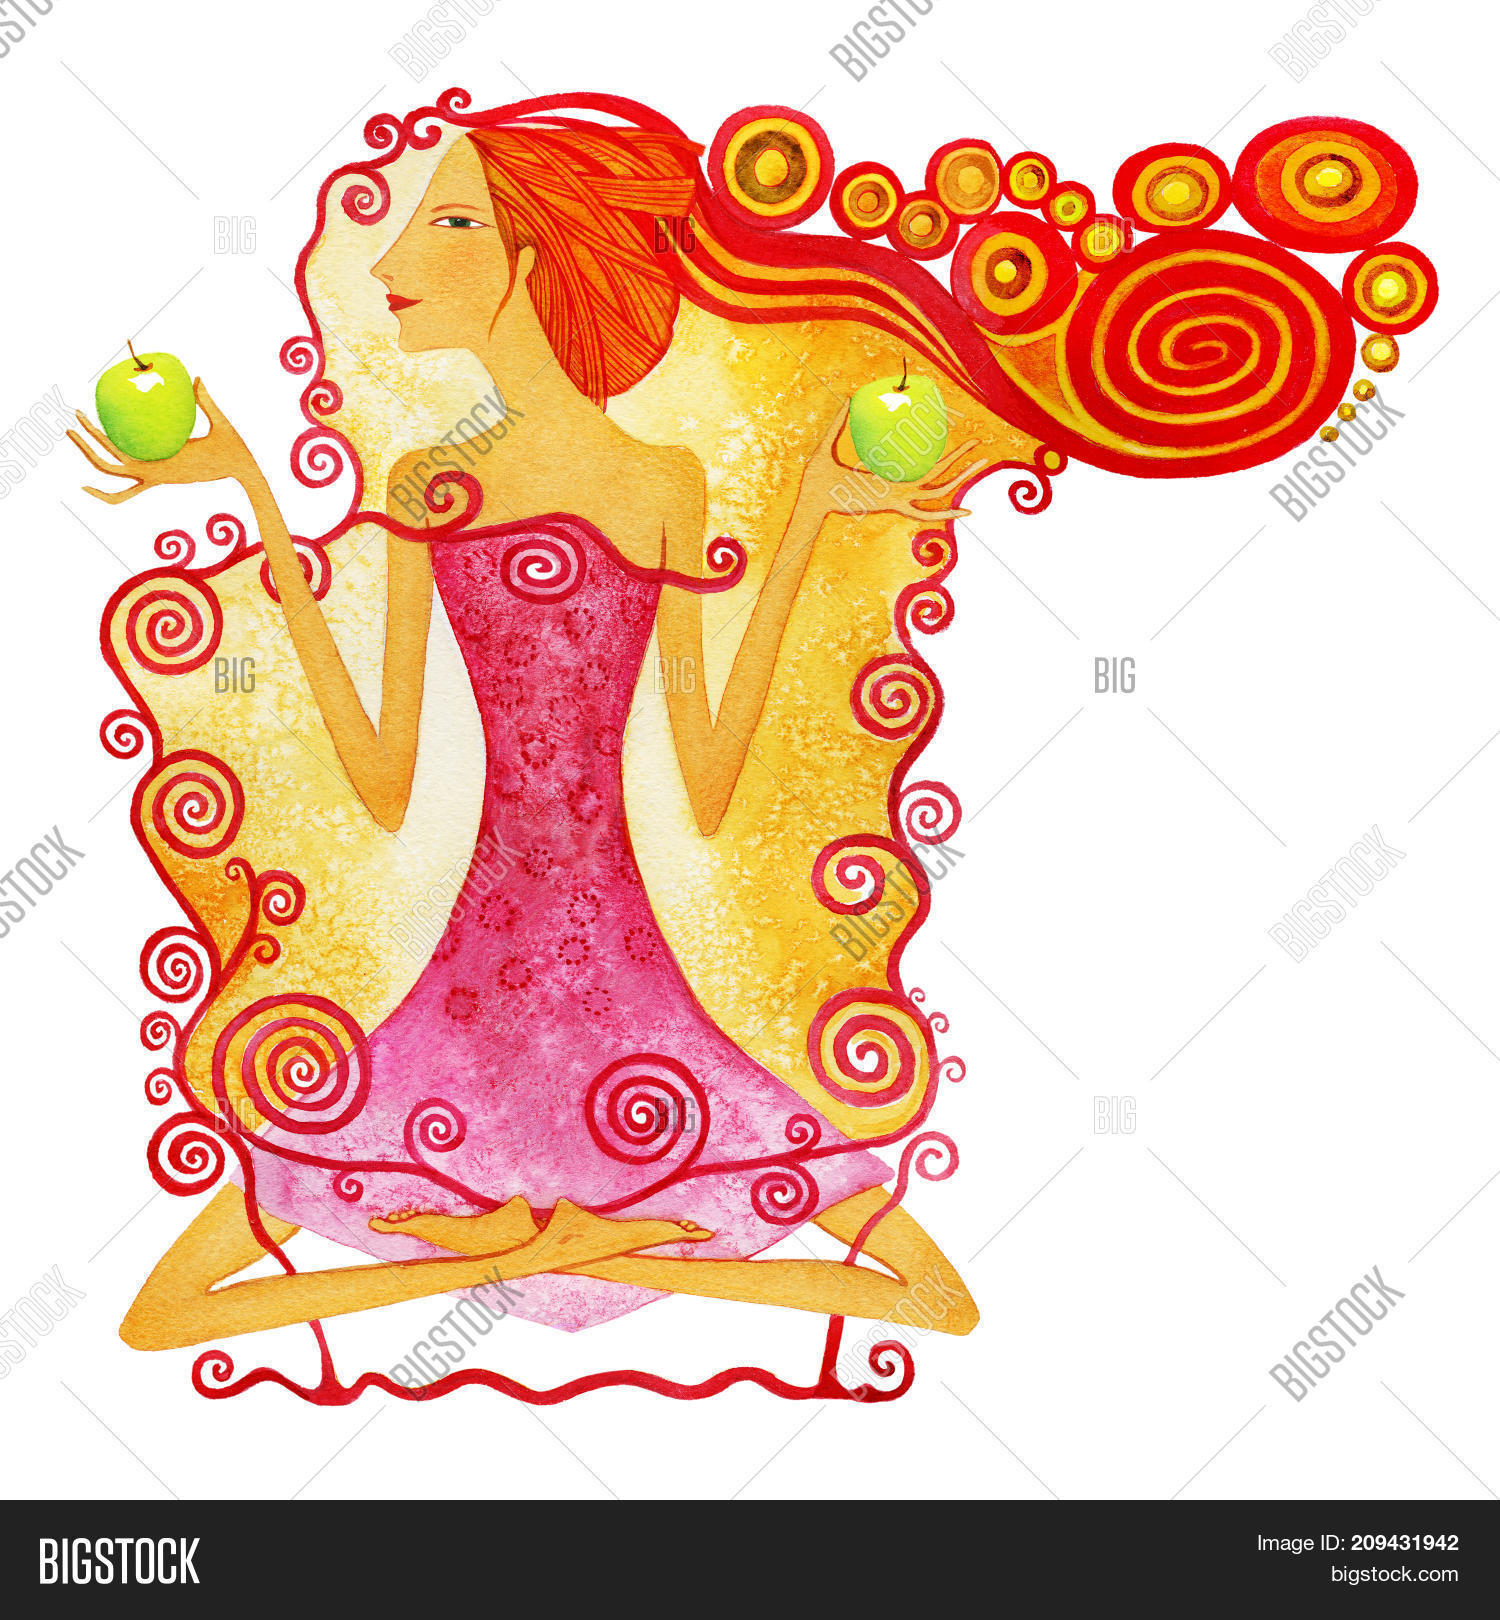 Young Barefoot Woman Image Photo Free Trial Bigstock